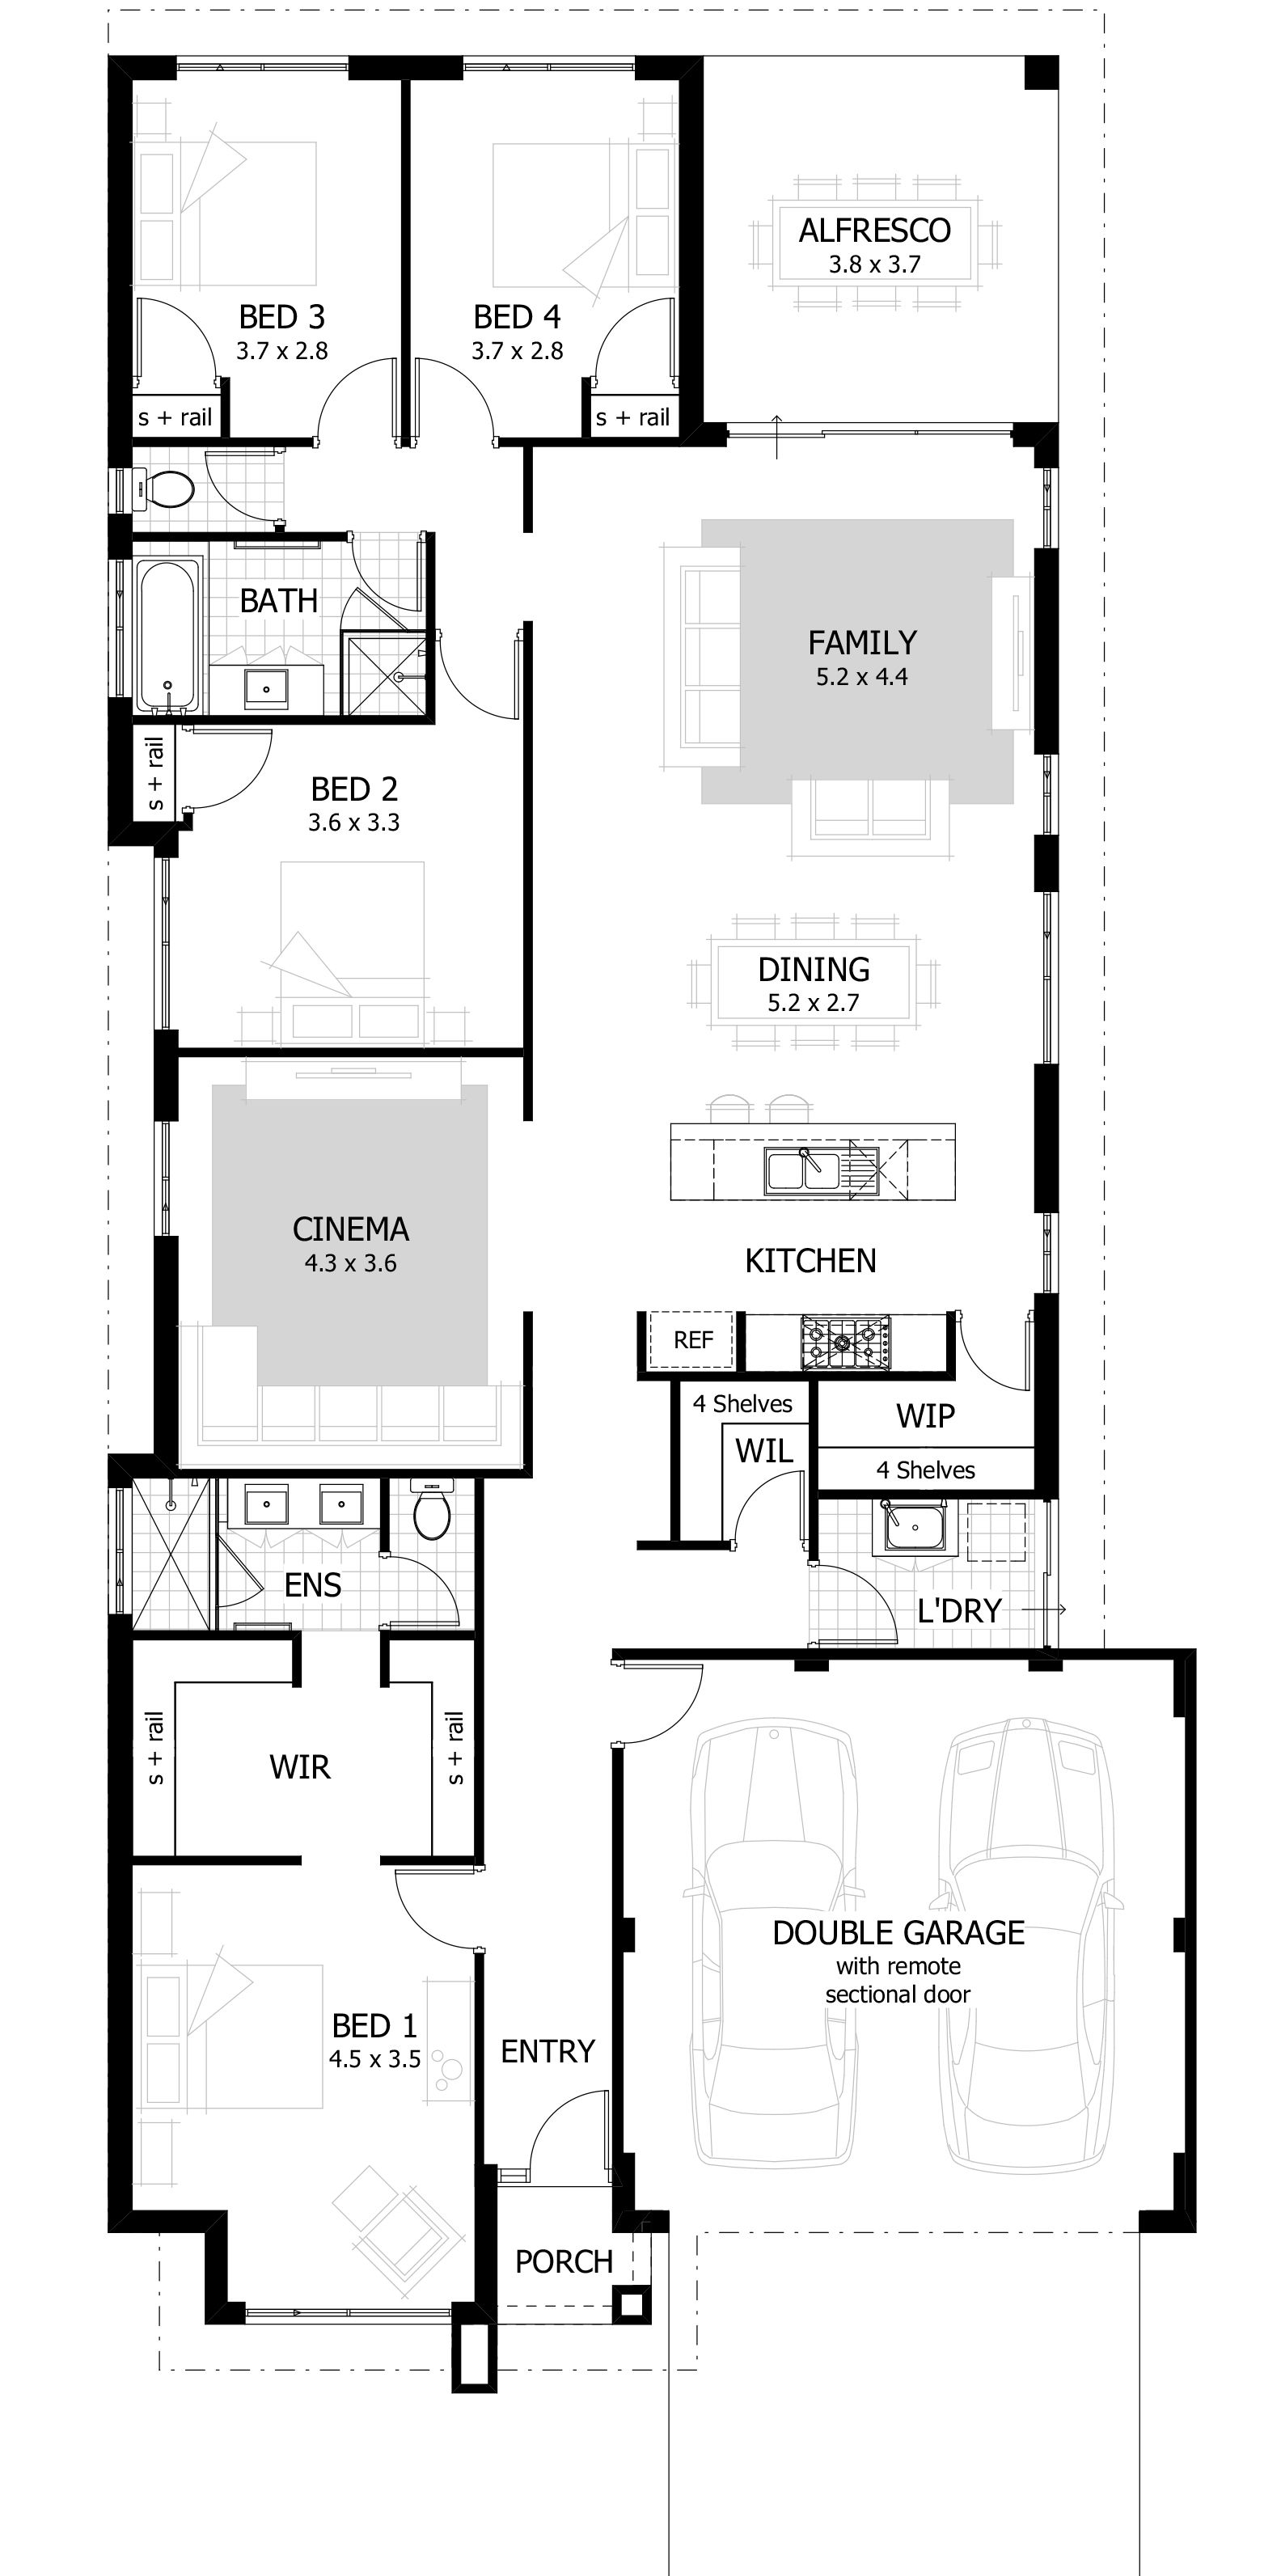 4 Bedroom House Plans & Home Designs | Celebration Homes | Cinema ...